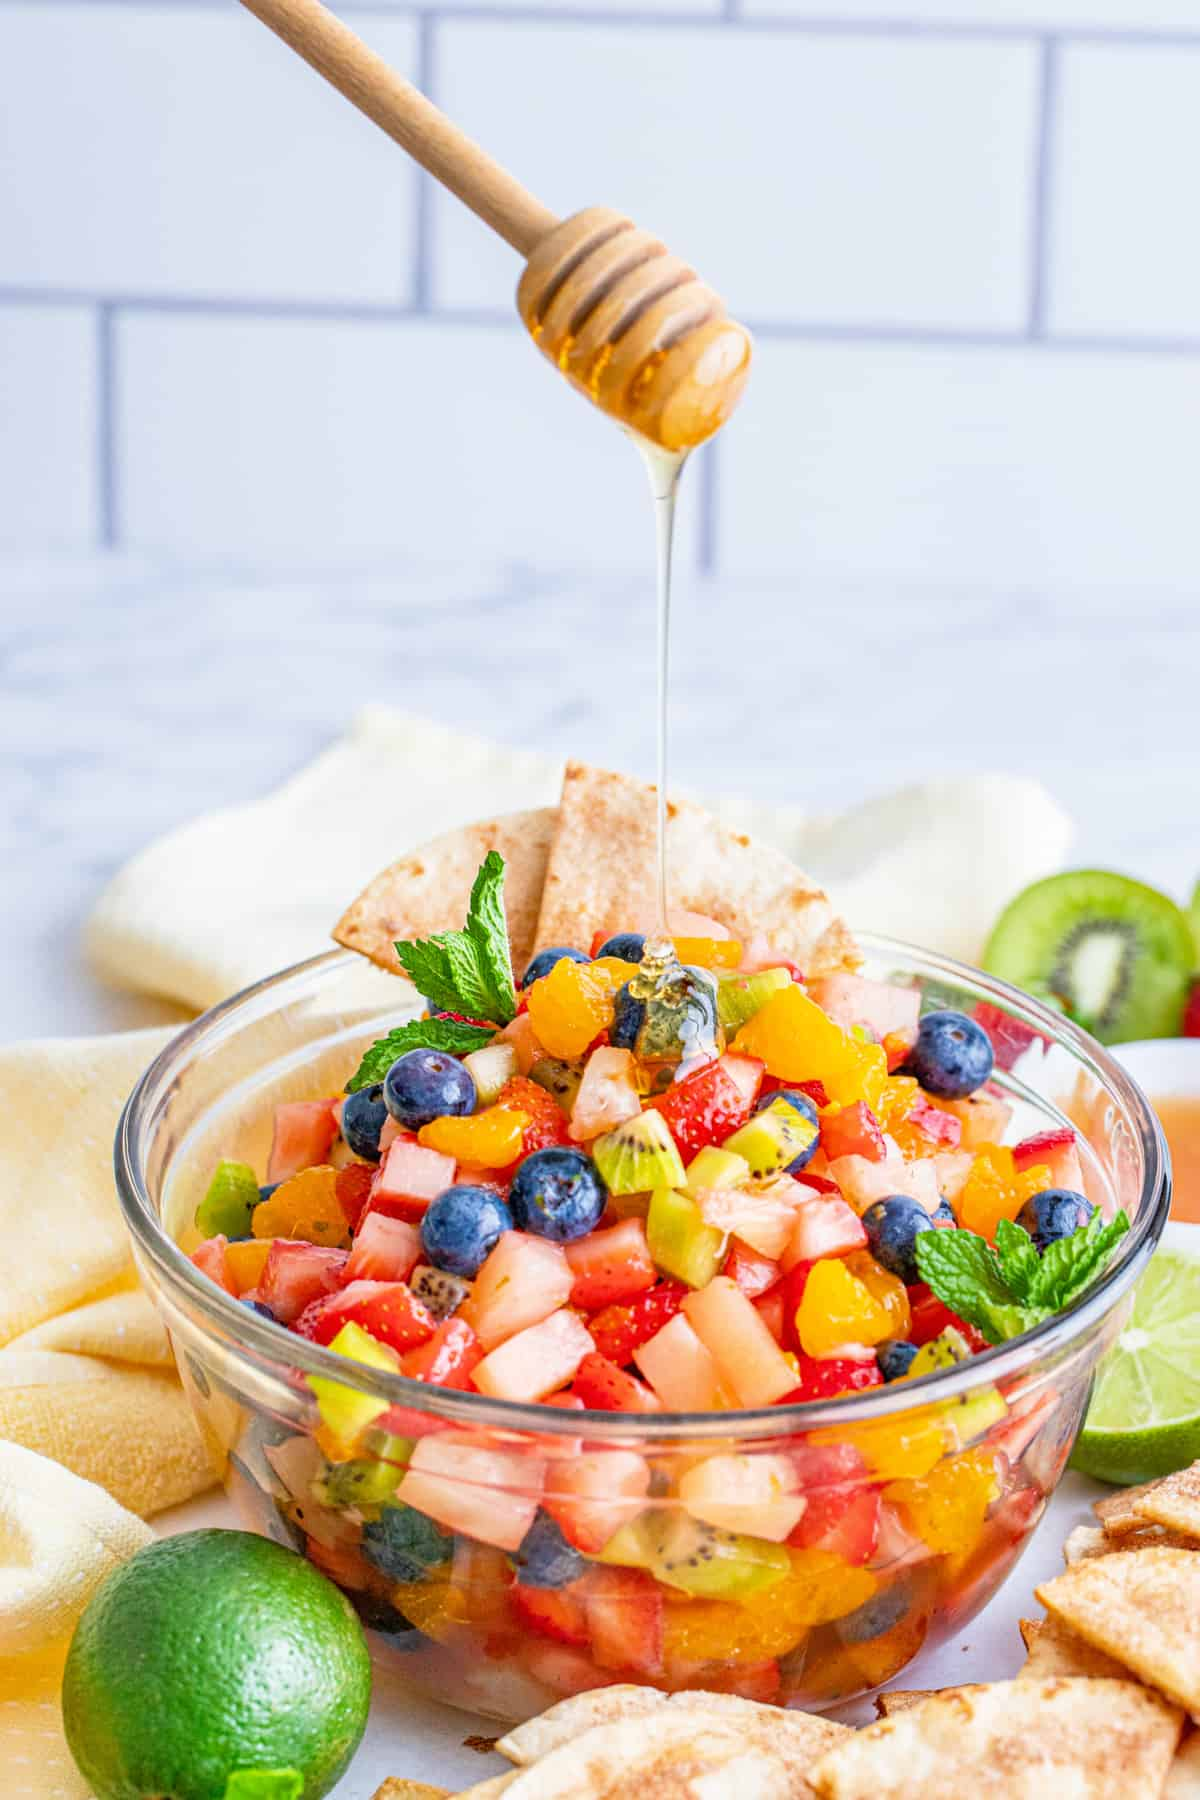 Honey being drizzled over Fruit Salsa